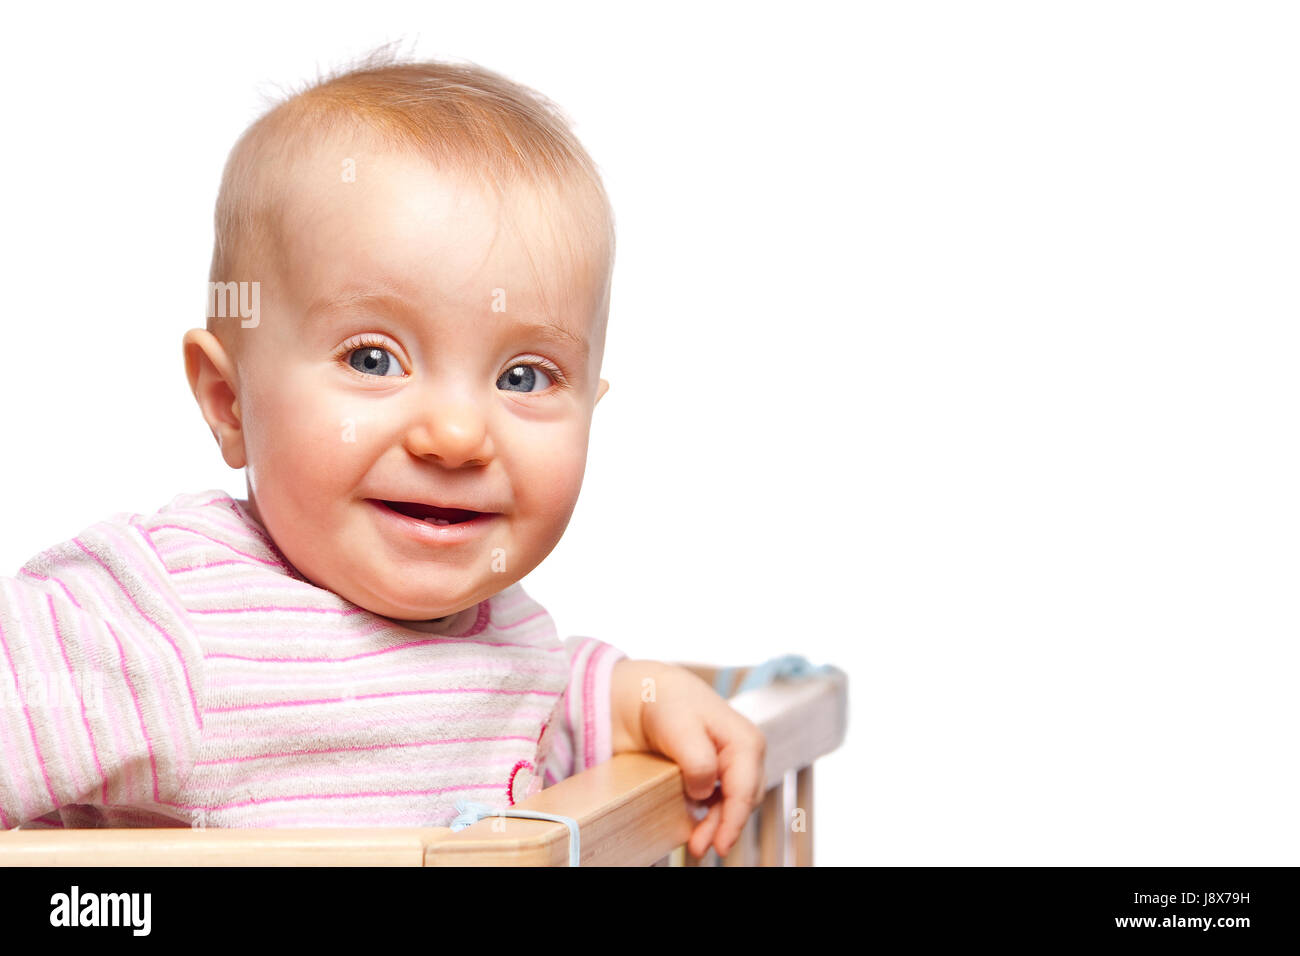 toddler in crib Stock Photo